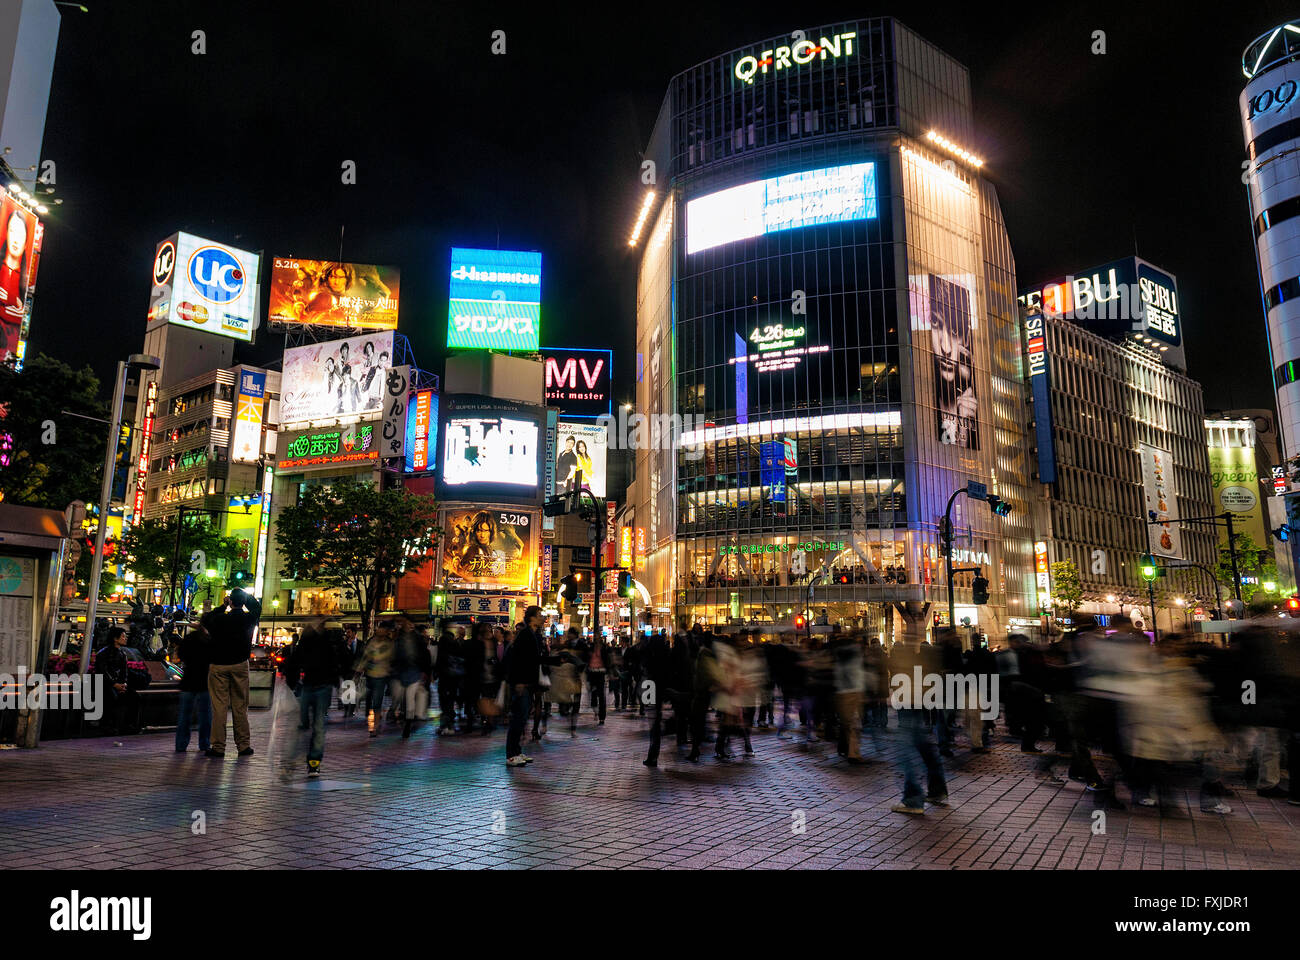 hachiko crossing in busy shibuya area of tokyo japan at night - Stock Image